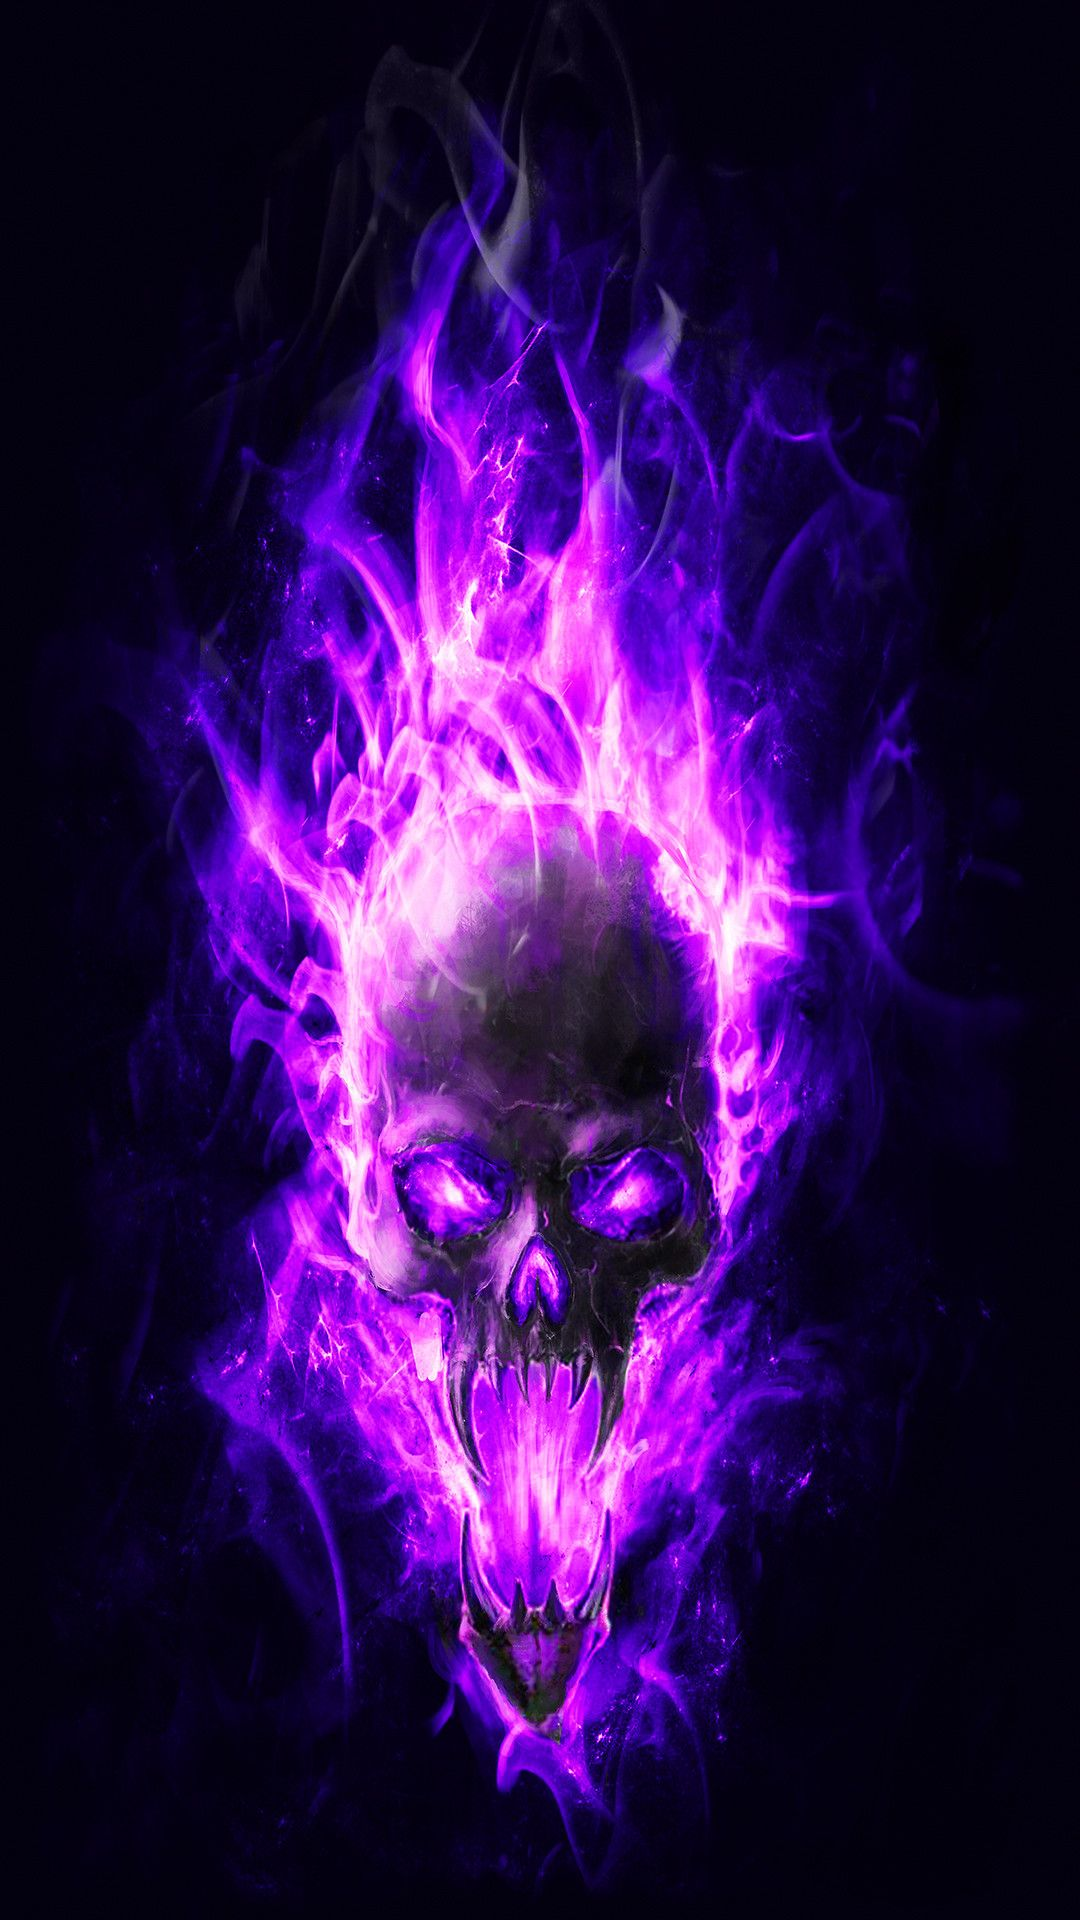 Res 1080x1920 Download Previewblue Flame Skull Wallpaper Skull Wallpaper Skulls Drawing Skull Artwork